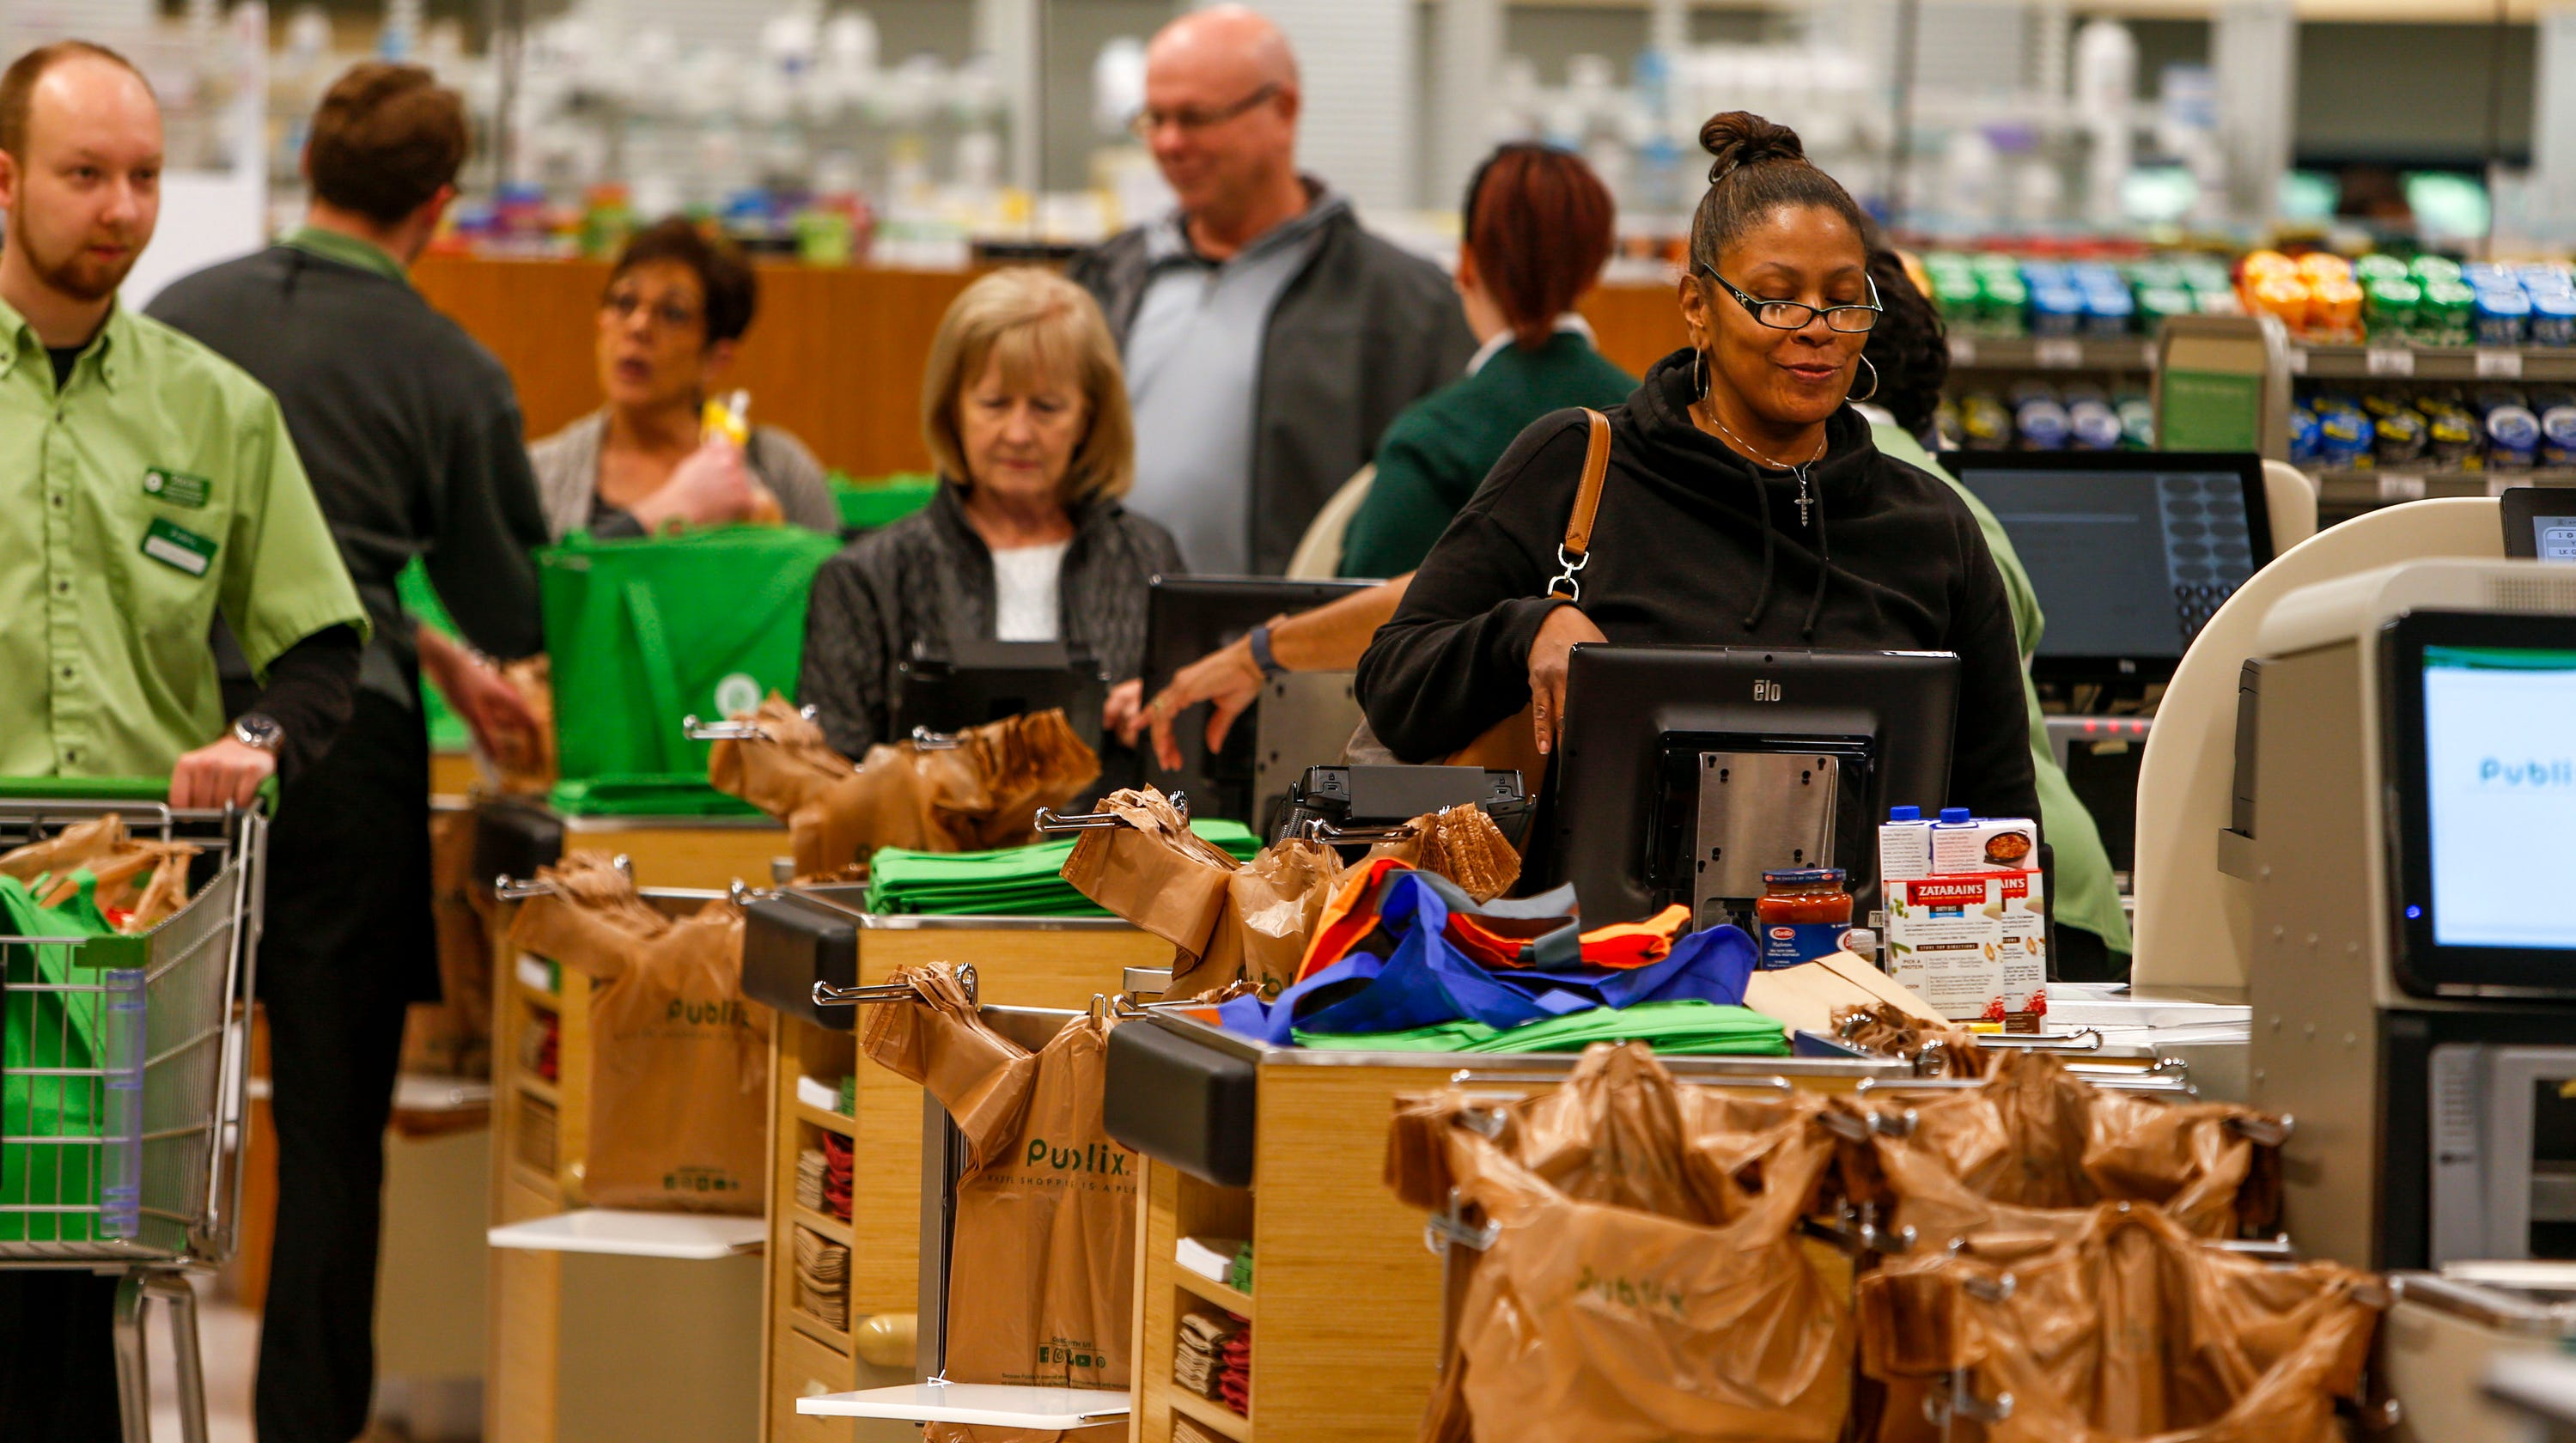 Publix Opens To Eager Crowds In Clarksvilles Sango Square